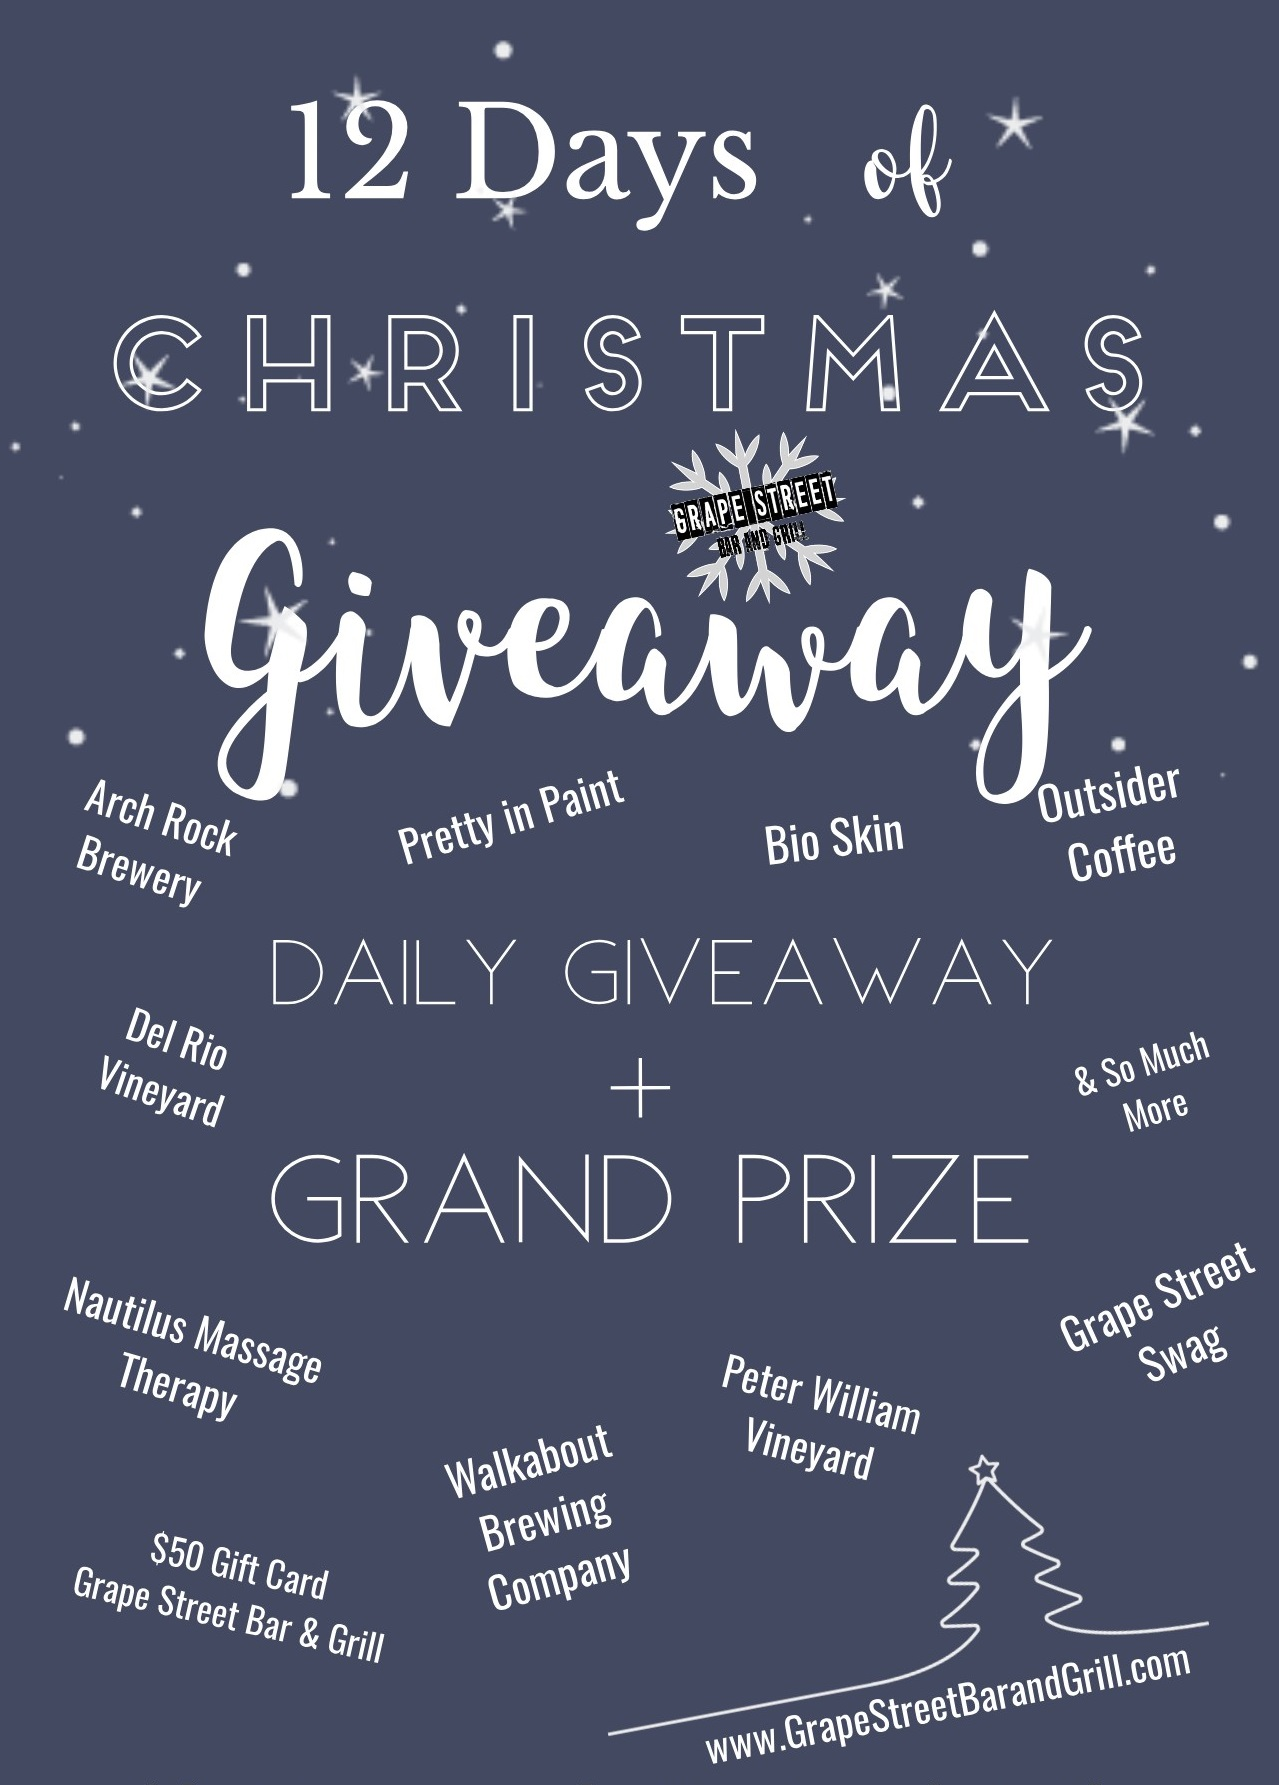 12 Days of Christmas Grape Street Bar and Grill Giveaway cropped